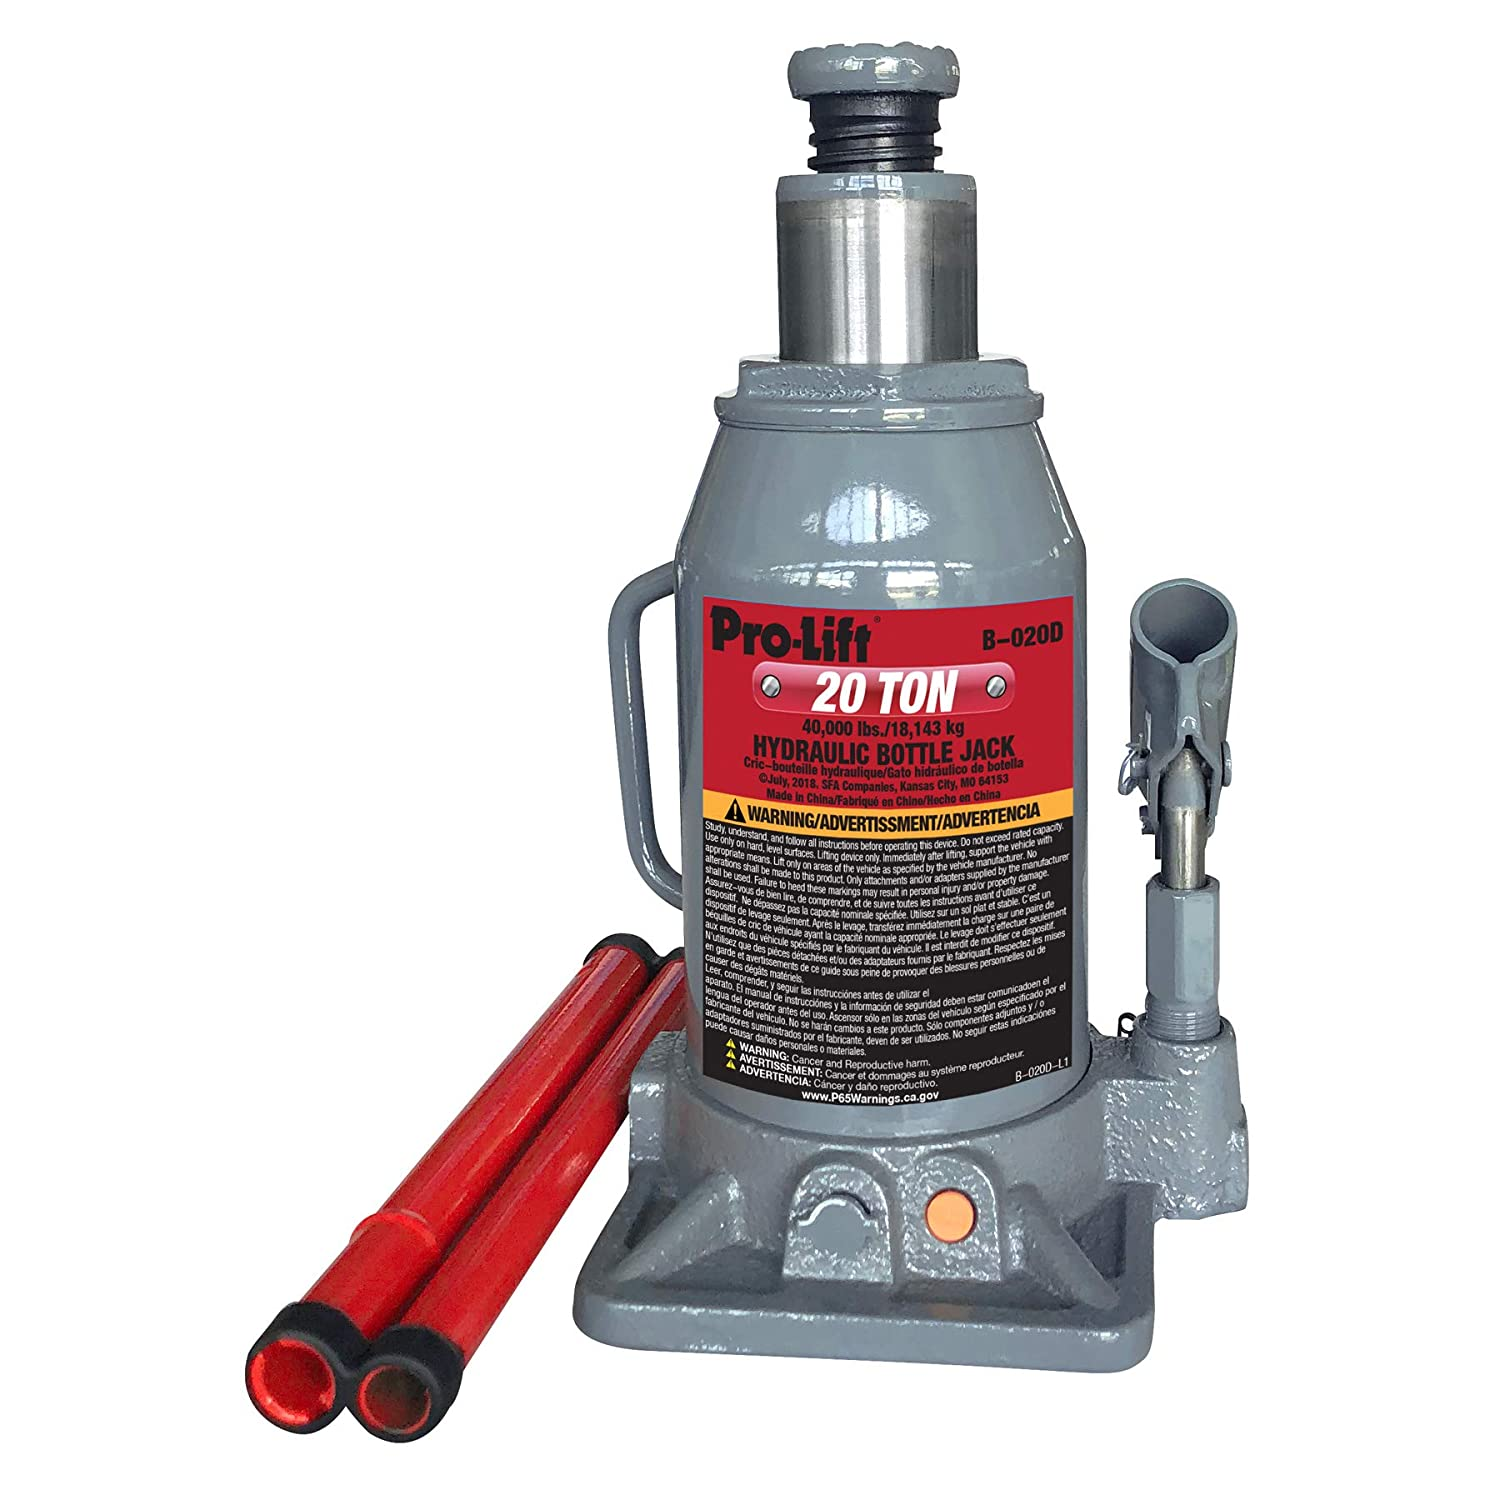 Amazon.com: Pro-Lift B-012D Grey Hydraulic Bottle Jack - 12 Ton Capacity: Automotive